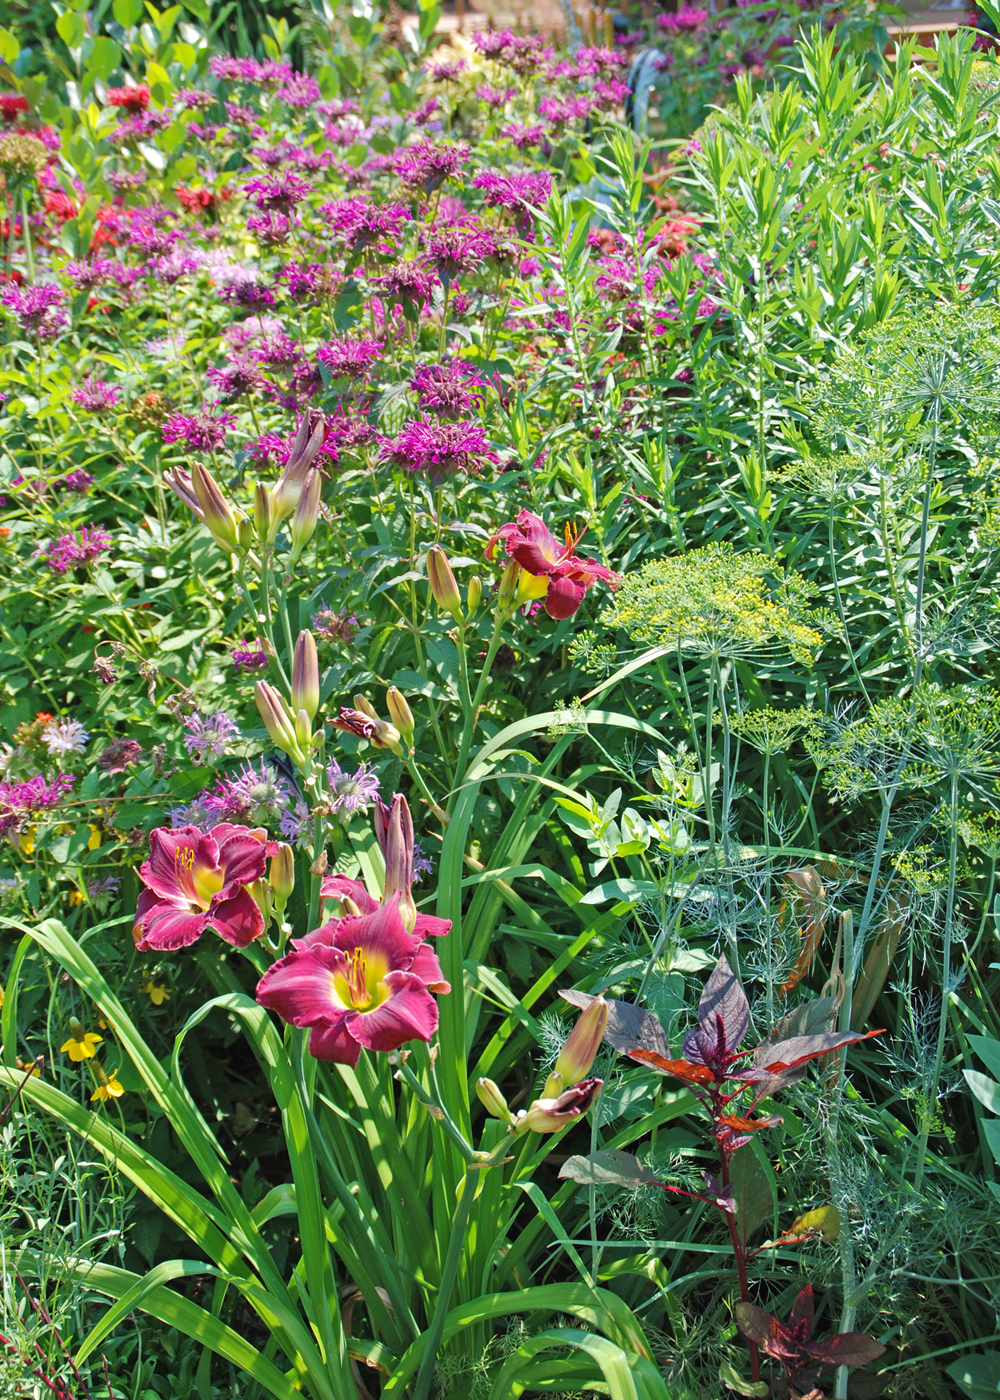 Removing spent flowers on many perennials will encourage additional bloom and keep gardens looking their best. Photo by Melinda Myers, LLC